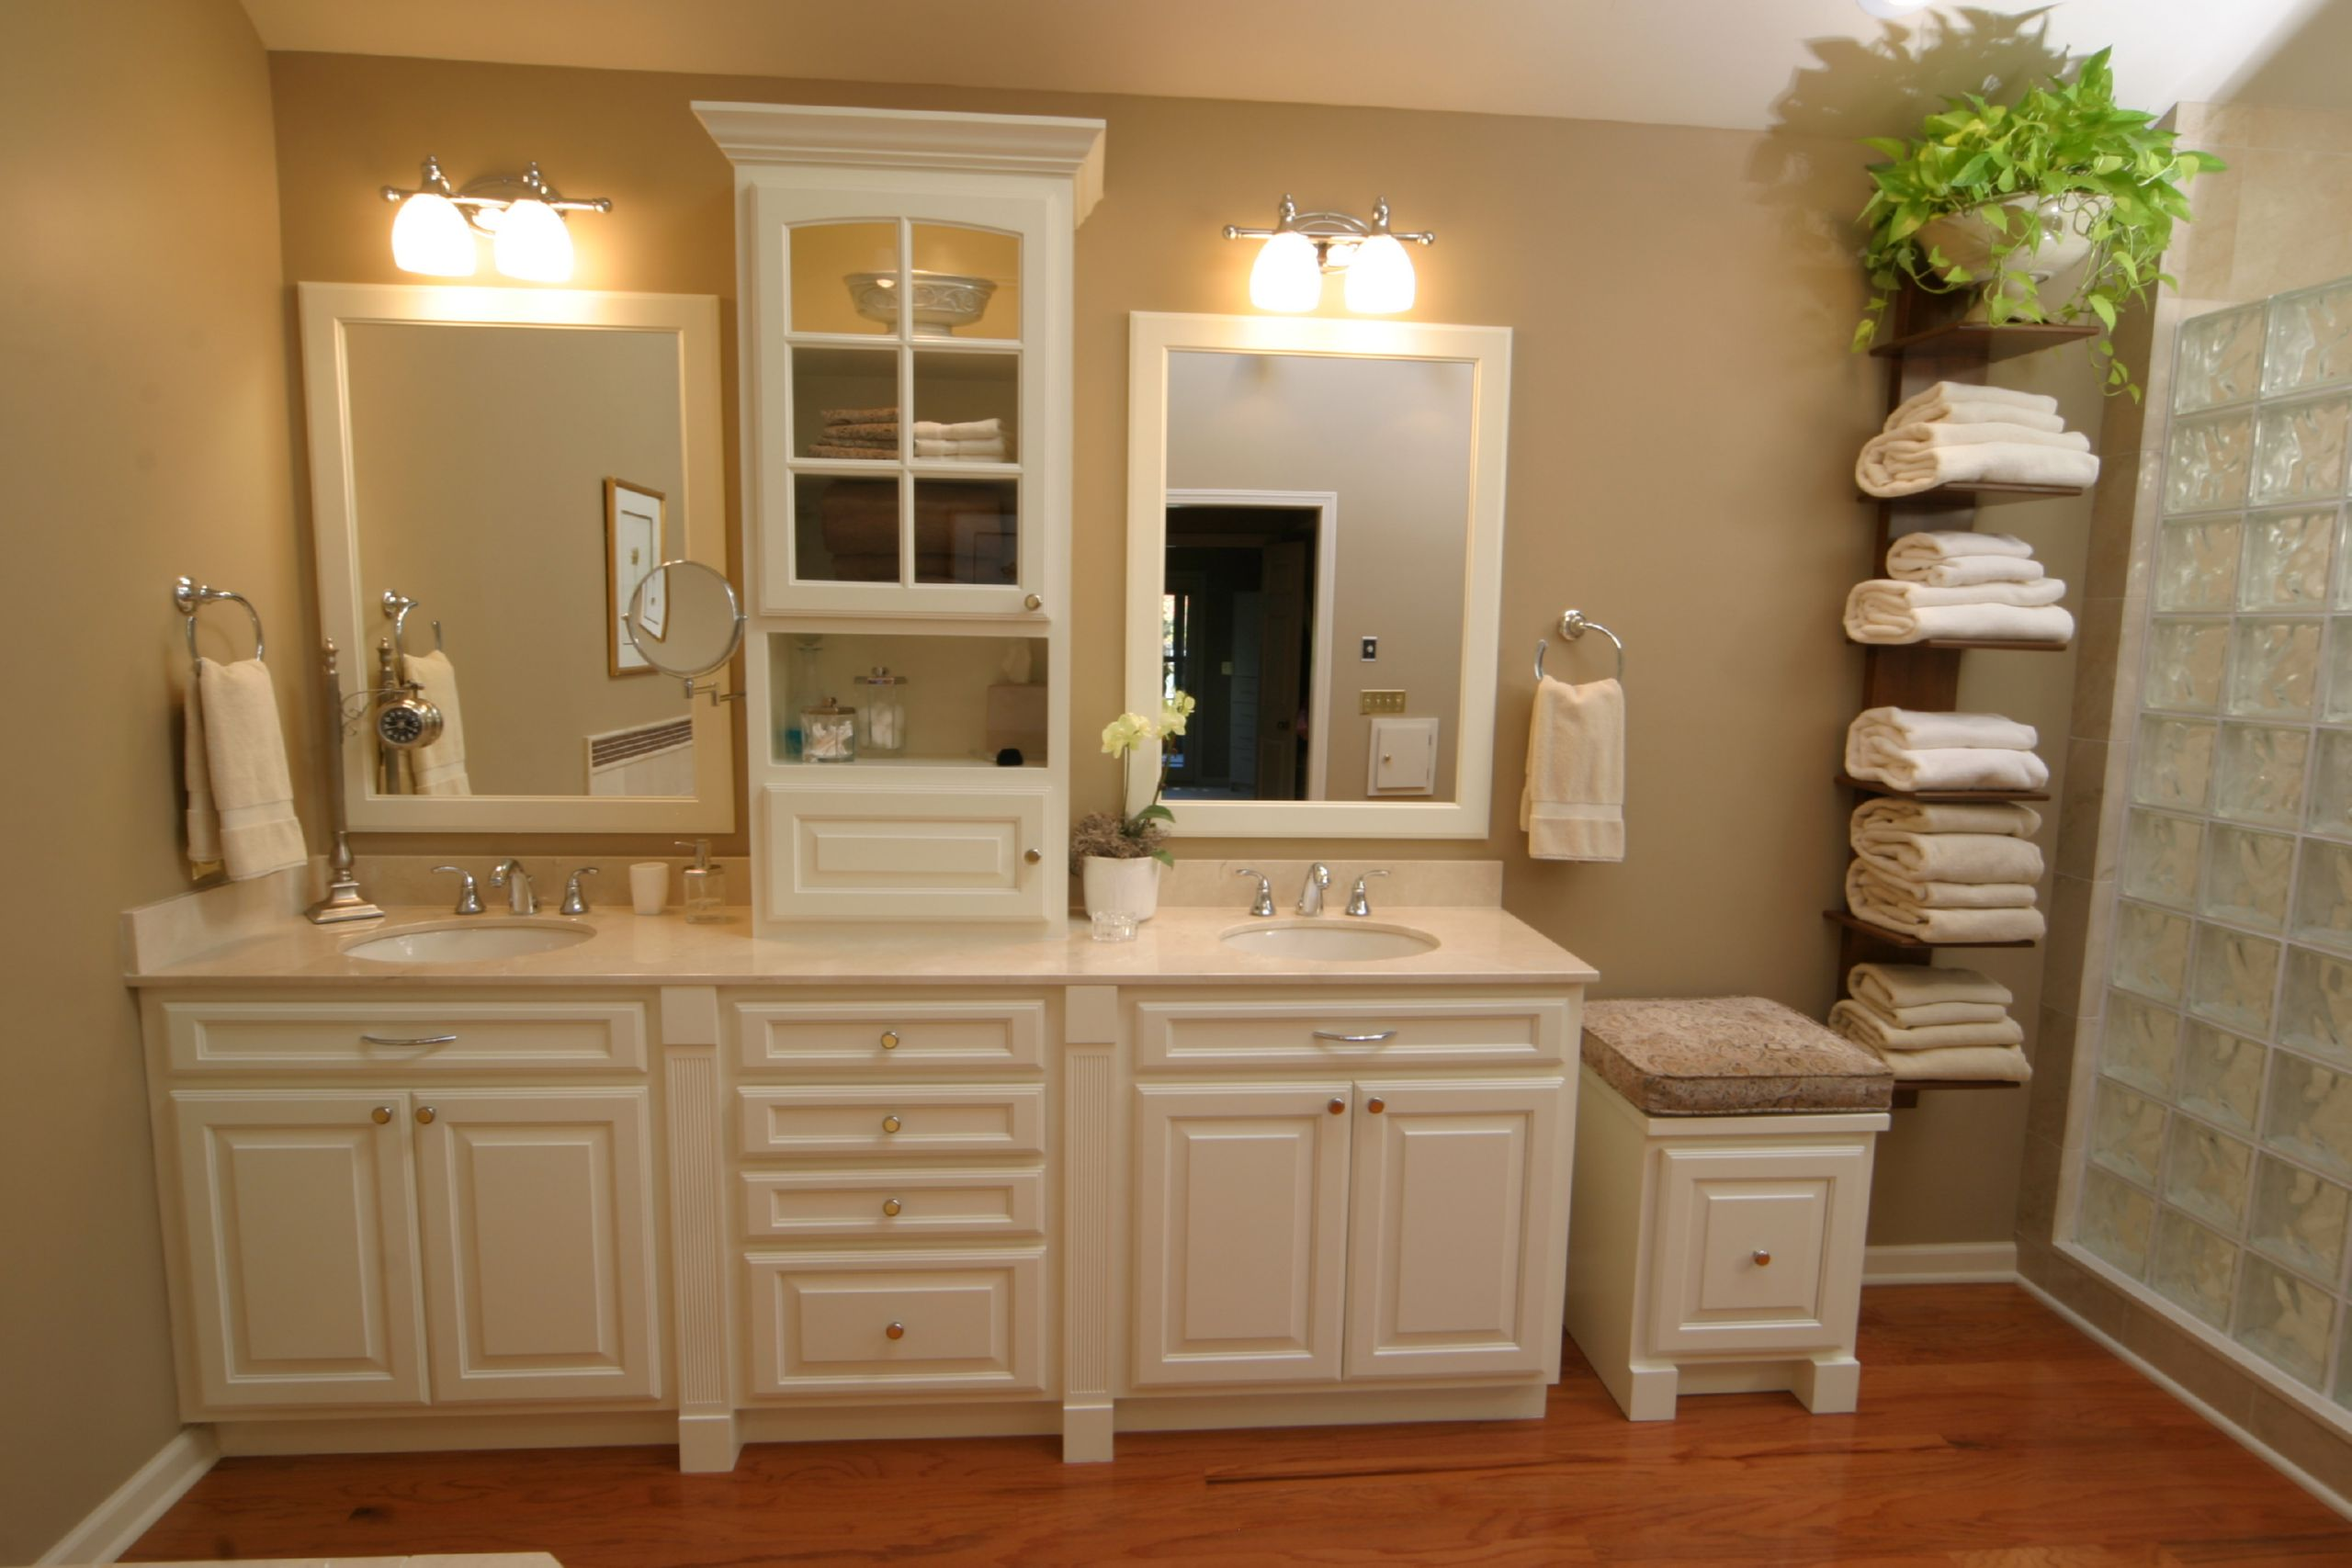 Bathroom remodeling bath remodel contractor for Bathroom remodeling pictures and ideas